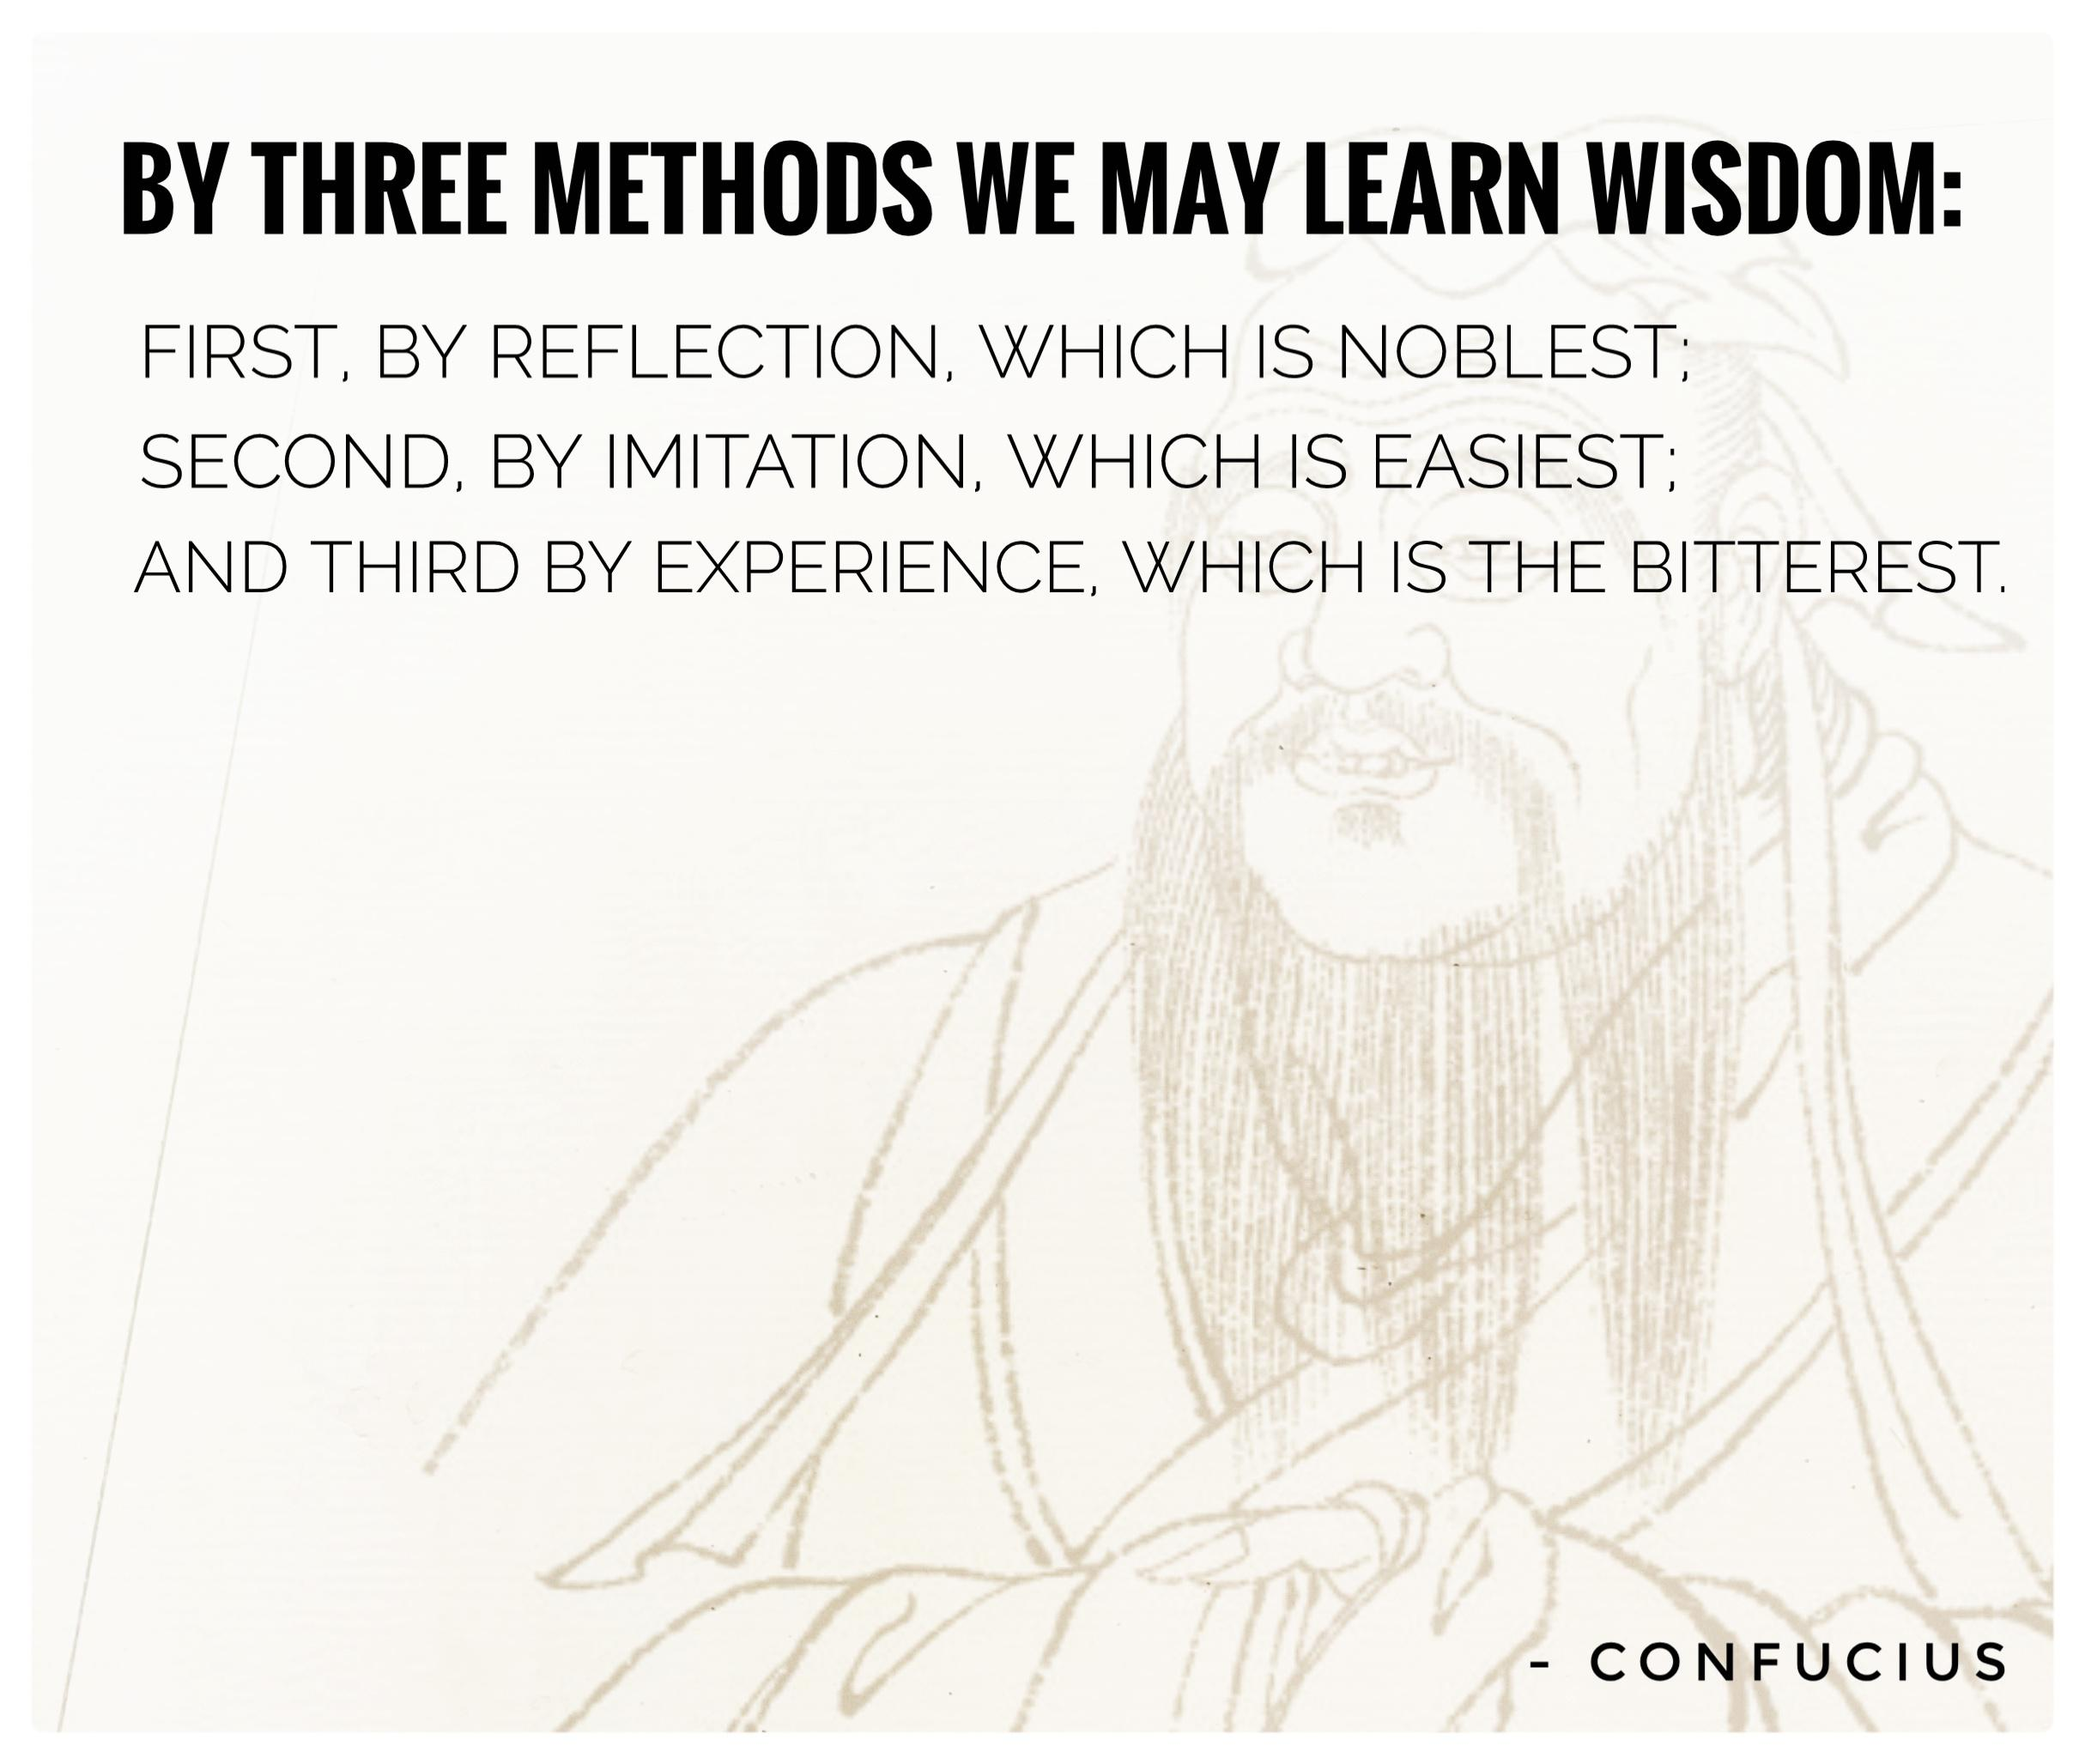 """By three methods we may learn wisdom: First, by reflection, which is noblest; Second, by imitation, which is easiest; and third by experience, which is the bitterest."" -Confucius [2429×2055]"